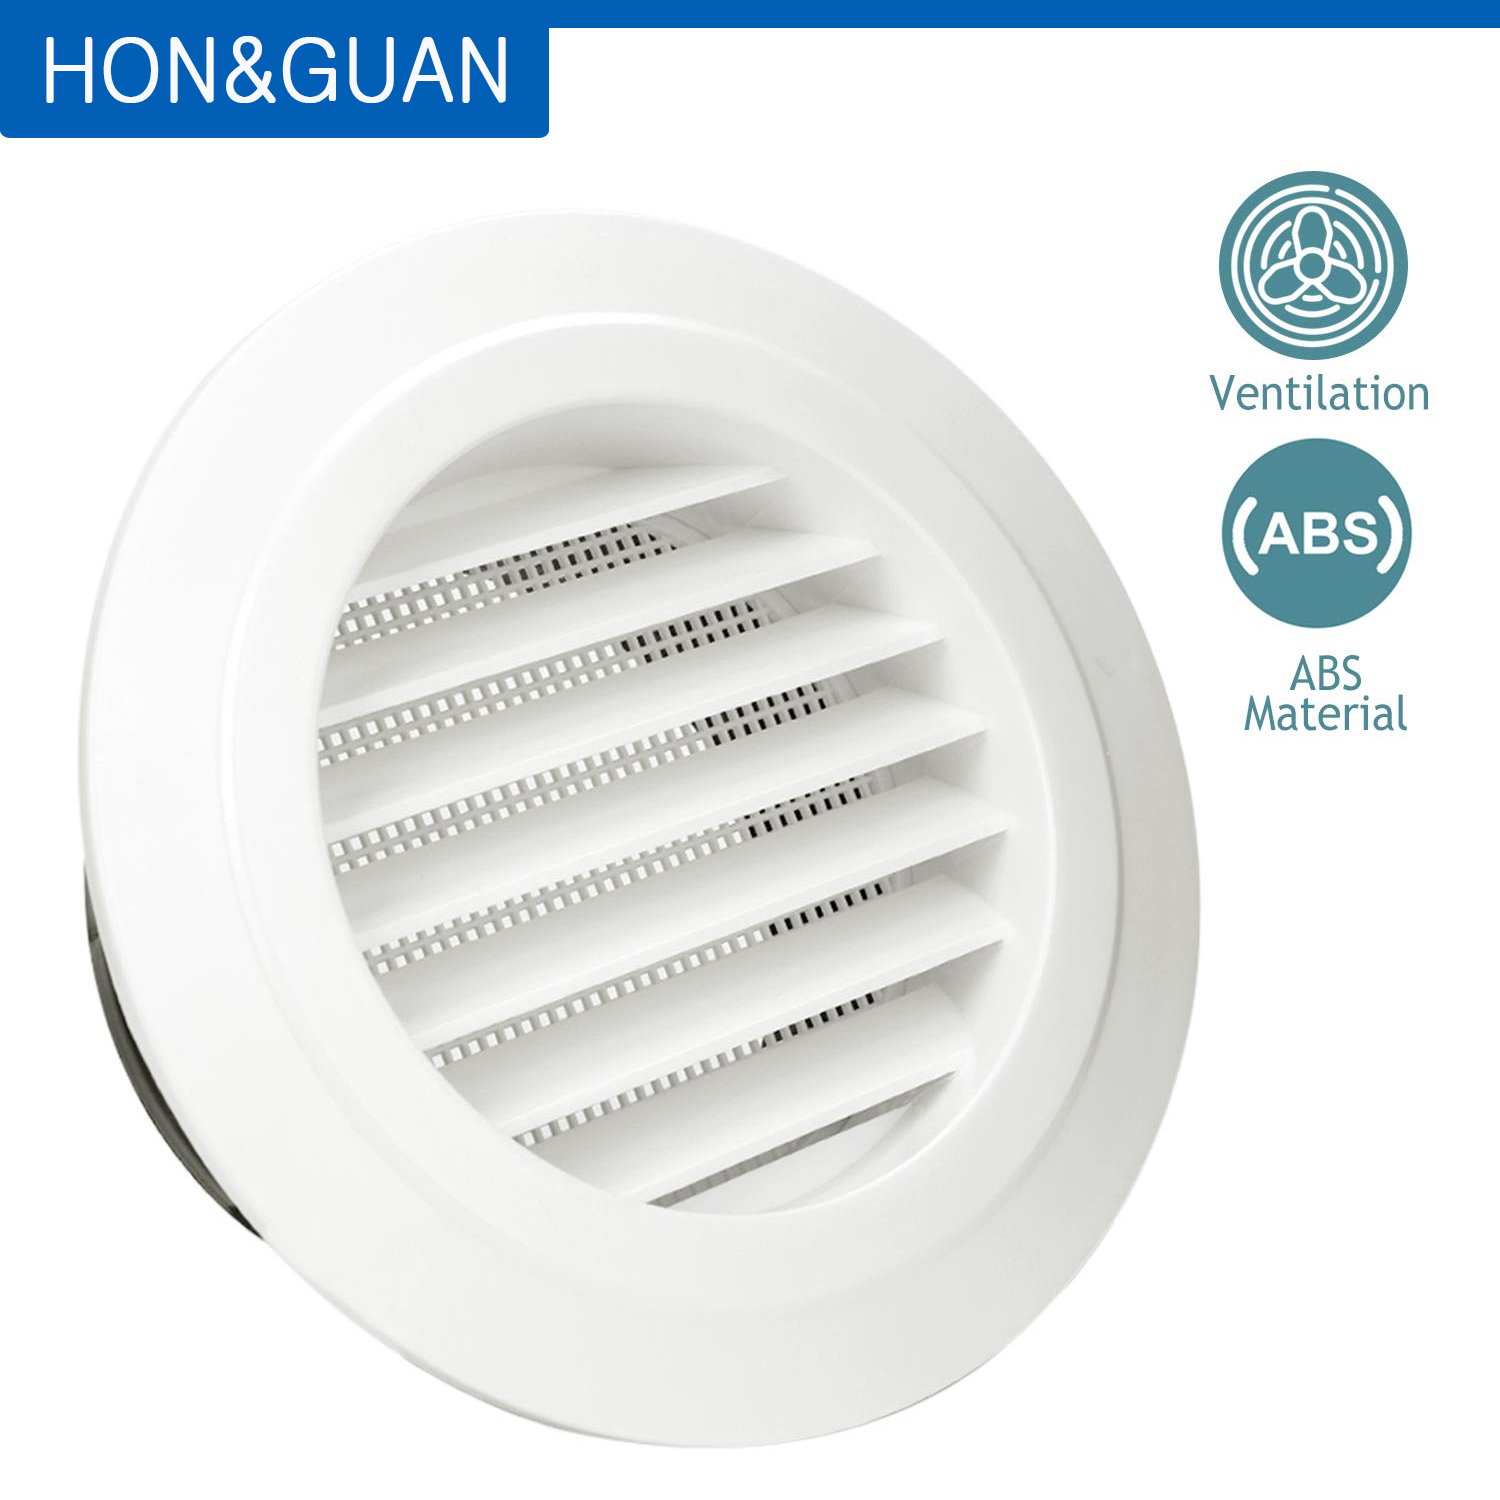 Hon&Guan Round Air Vent ABS Louver Grille Cover White Soffit Vent With Built-in Fly Screen Mesh For Bathroom Office Ventilation